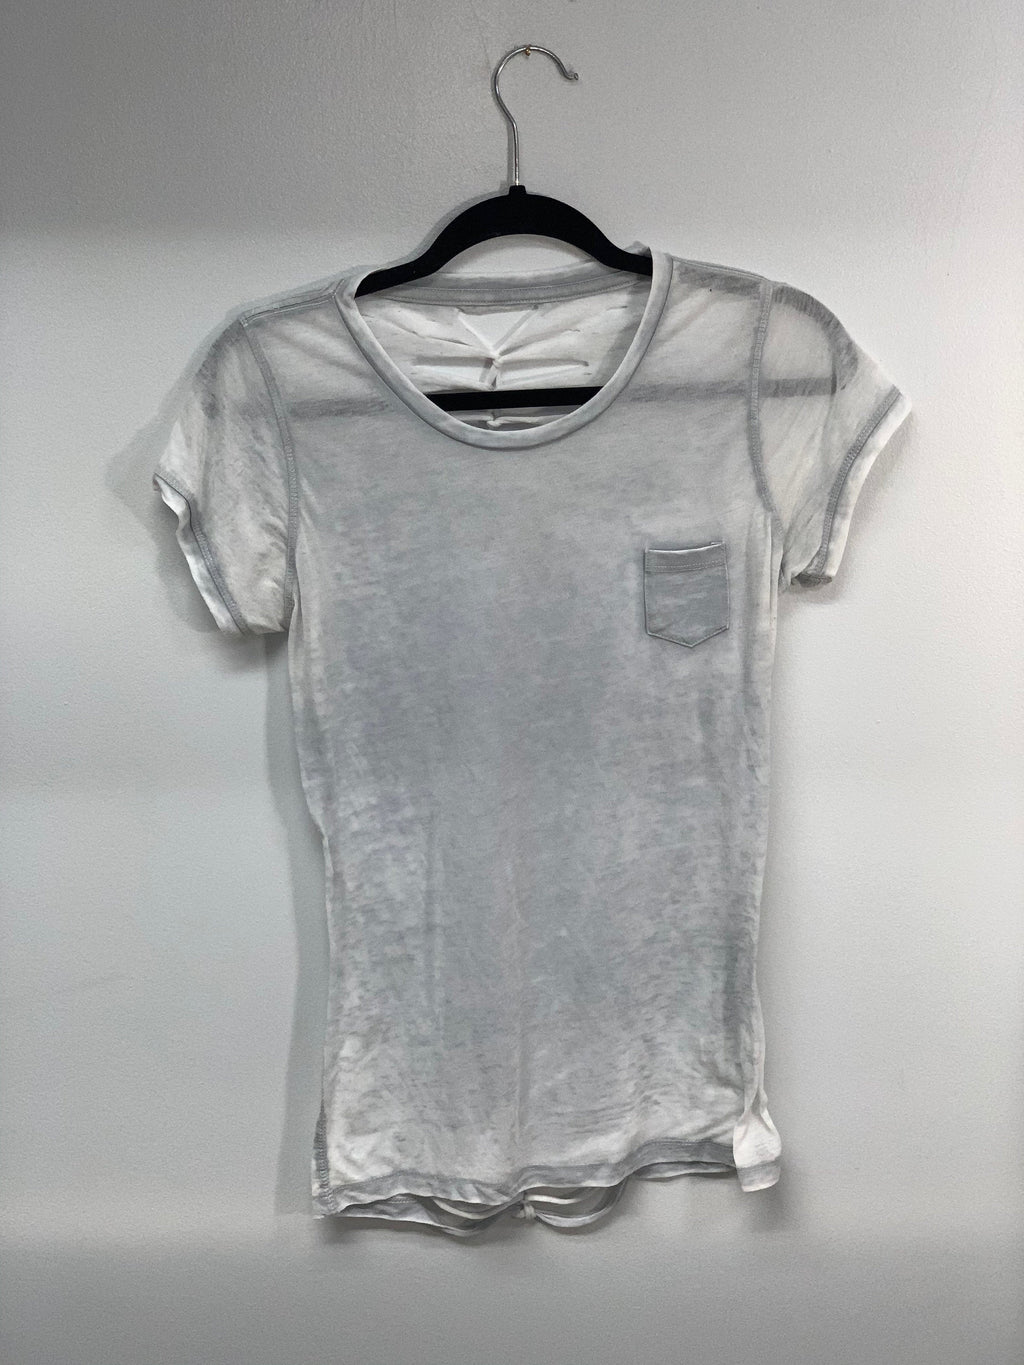 Pale Gray Tshirt Cut up By Sniptease